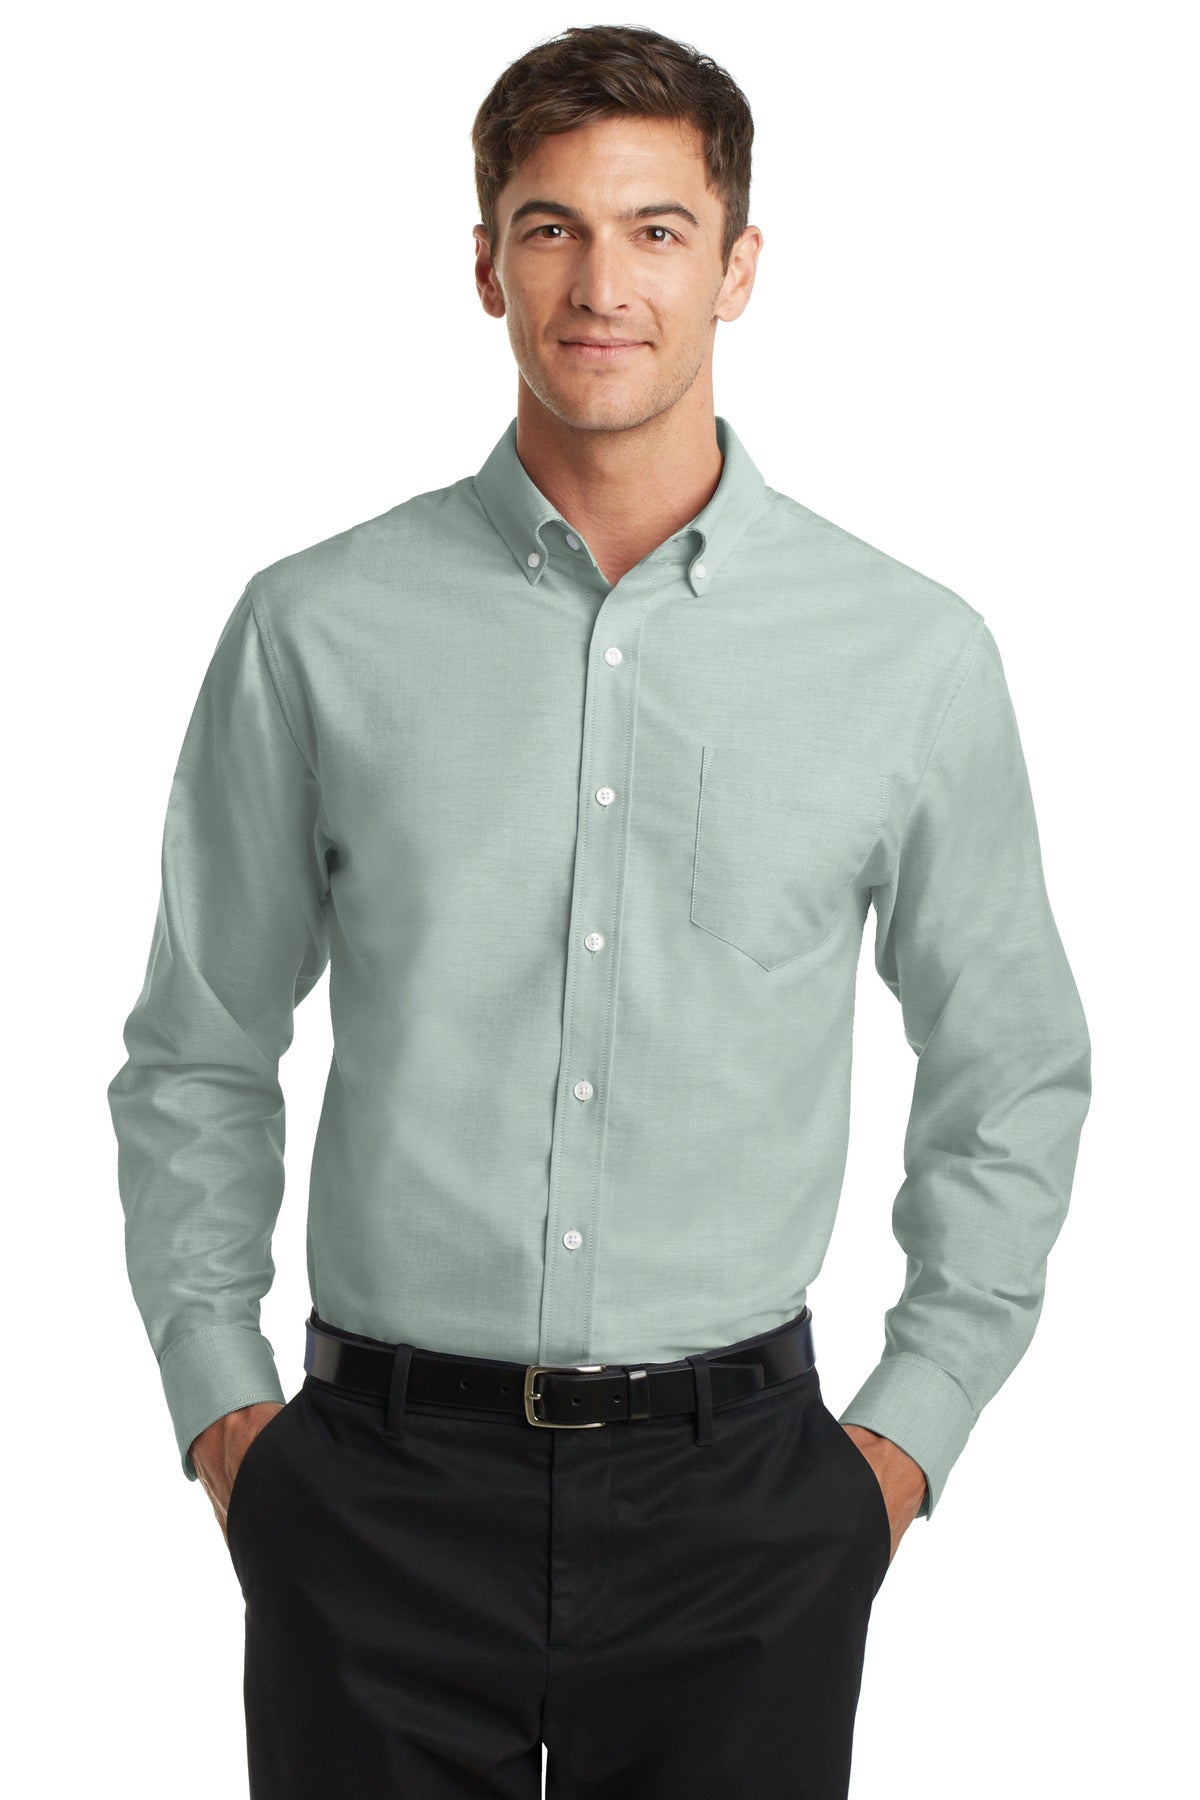 Steel Grey Port Authority Tall Silk Touch Polo.